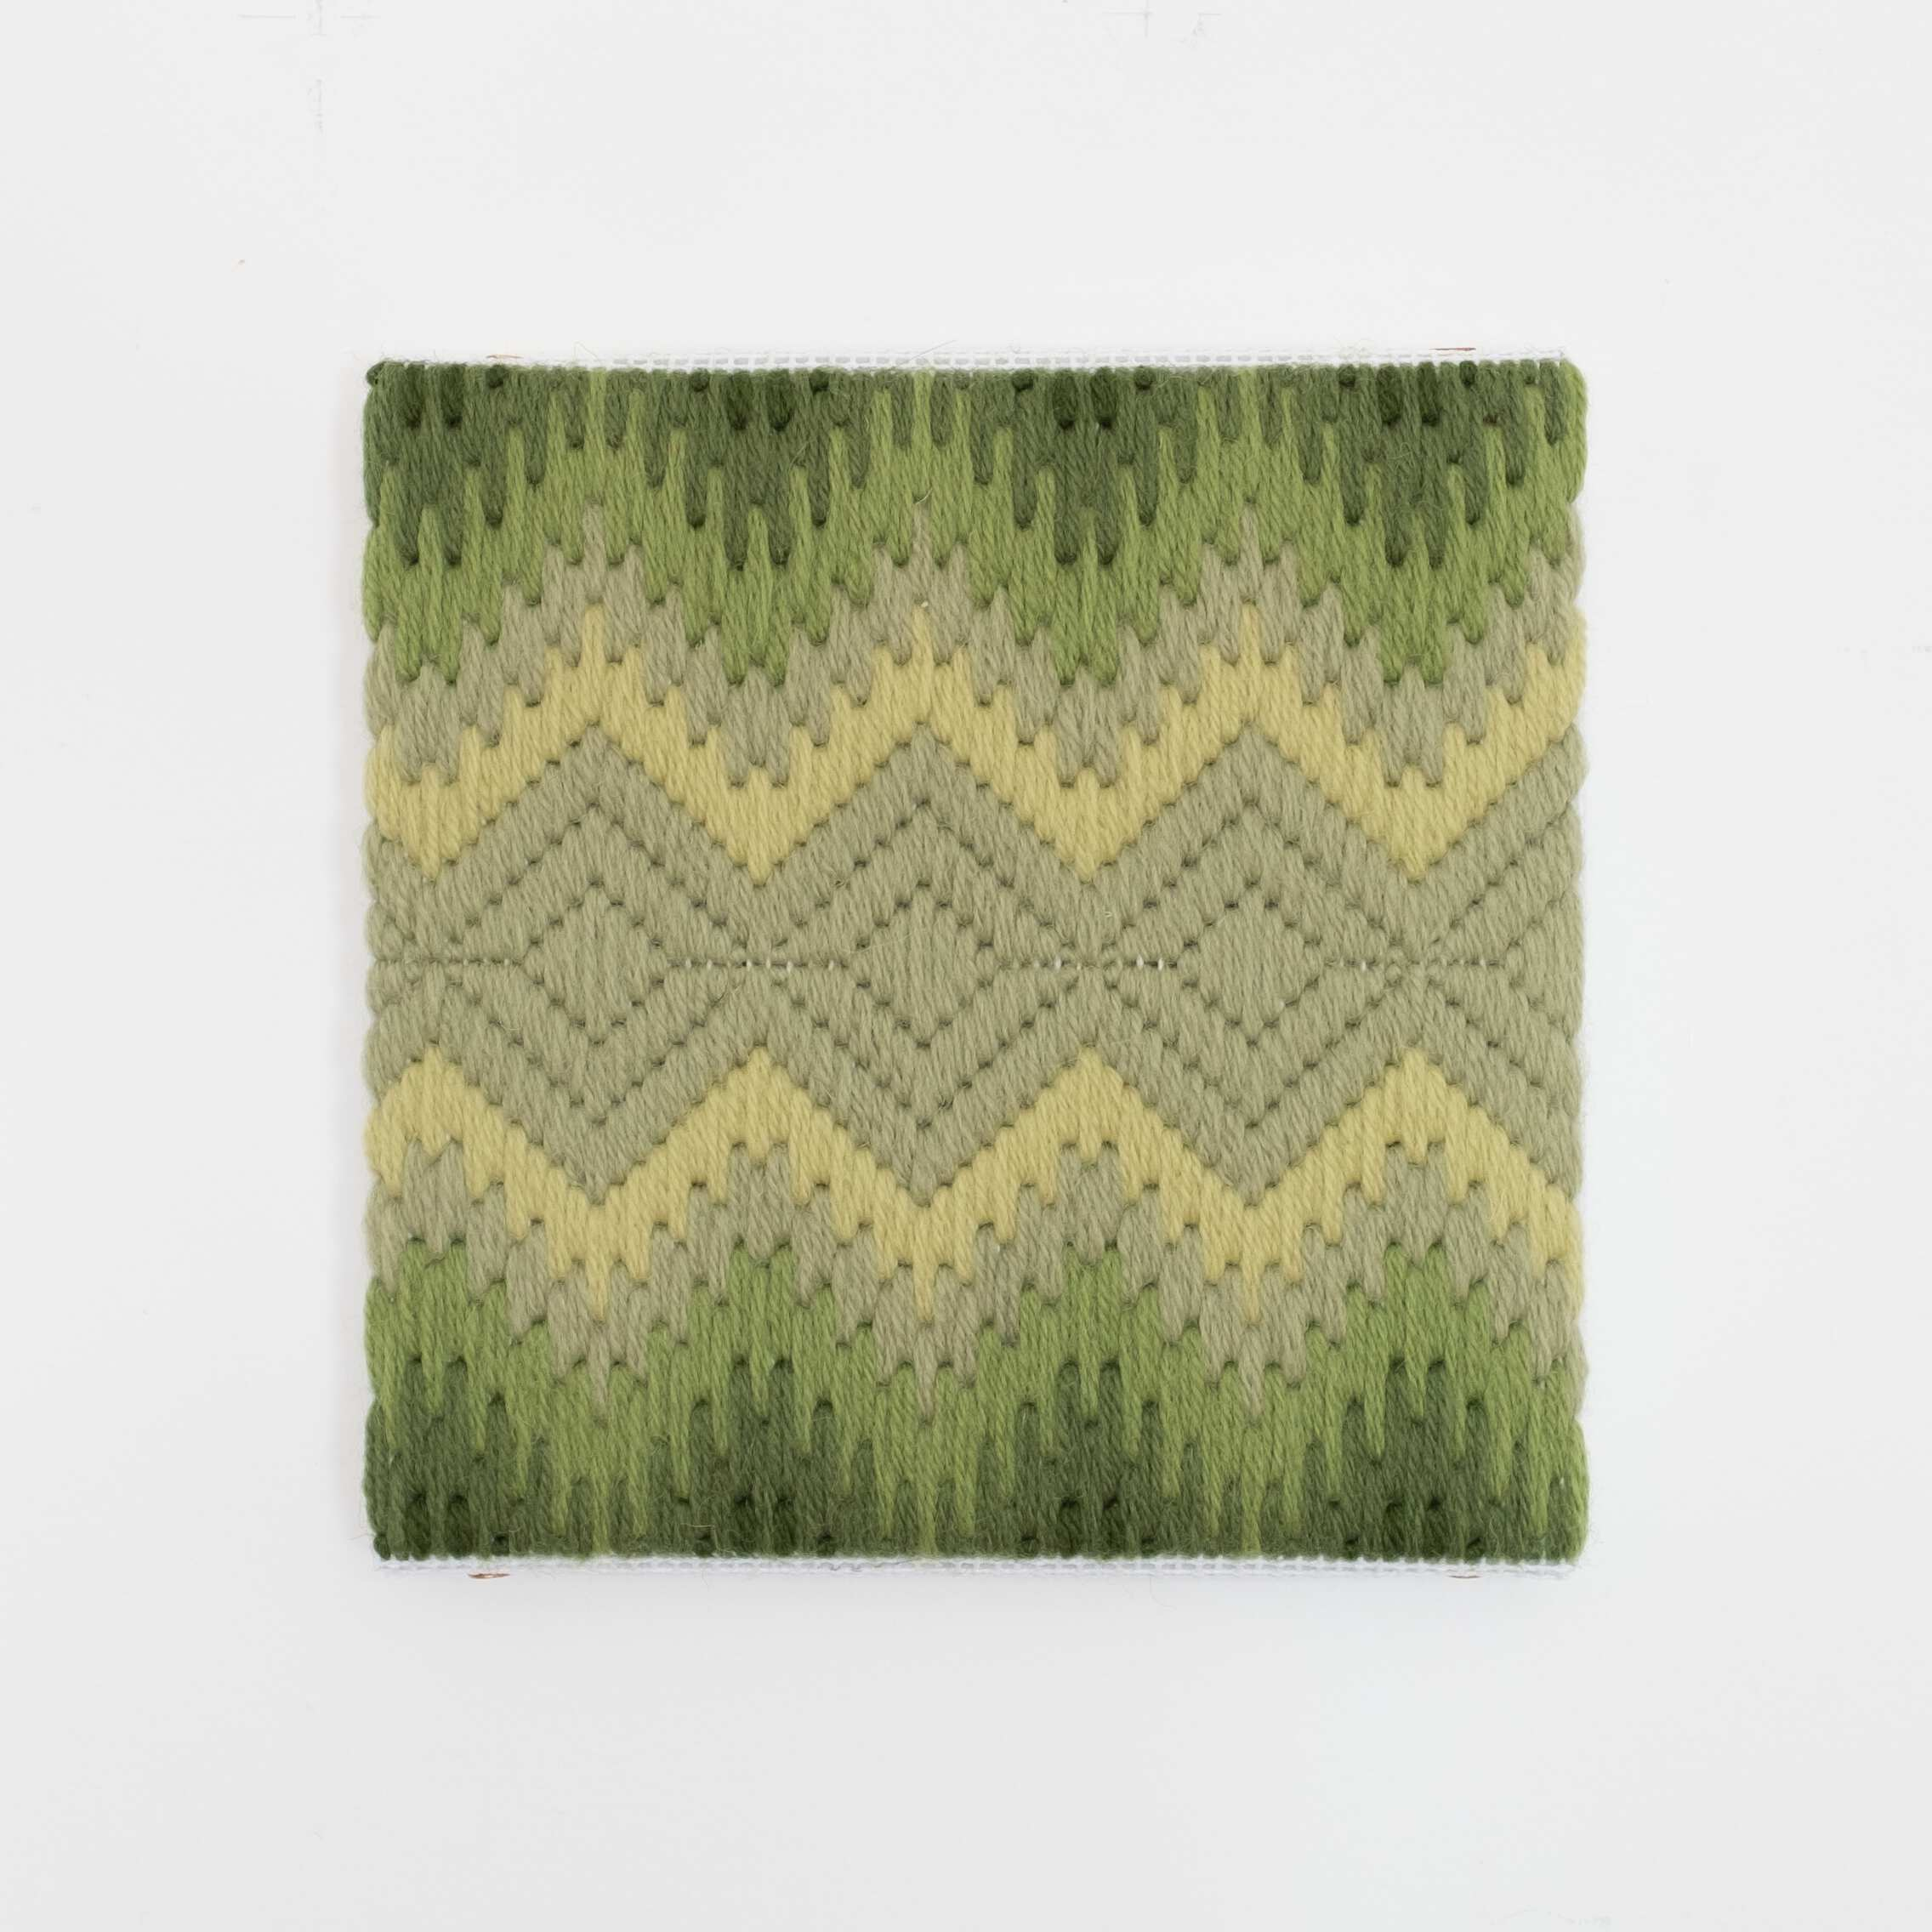 Depression Era [cut glass, yellow-green], Hand-embroidered wool on canvas over panel, 2020